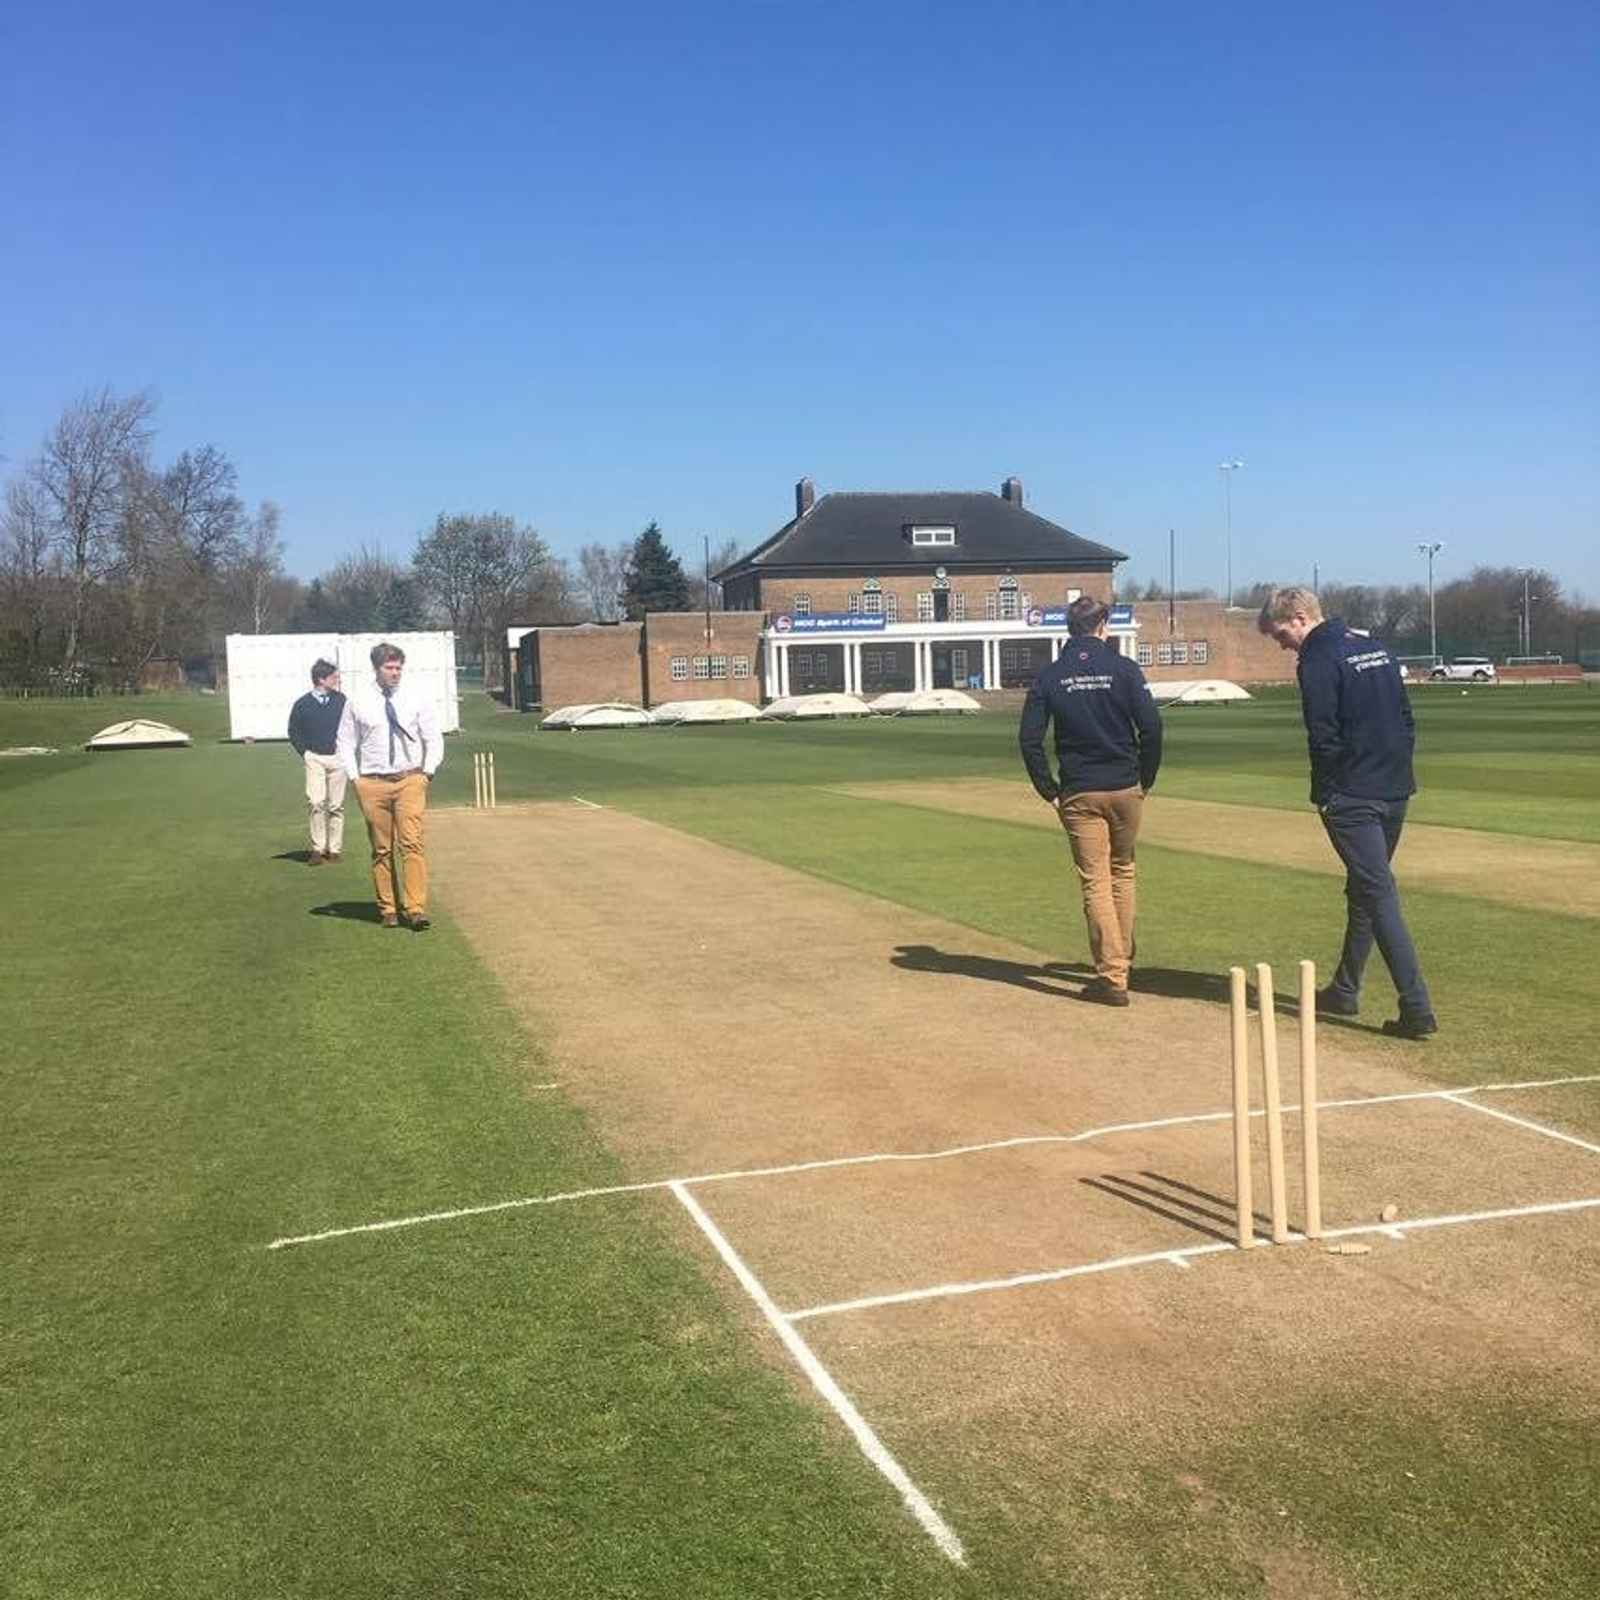 Match Reports - Wednesday 20th April